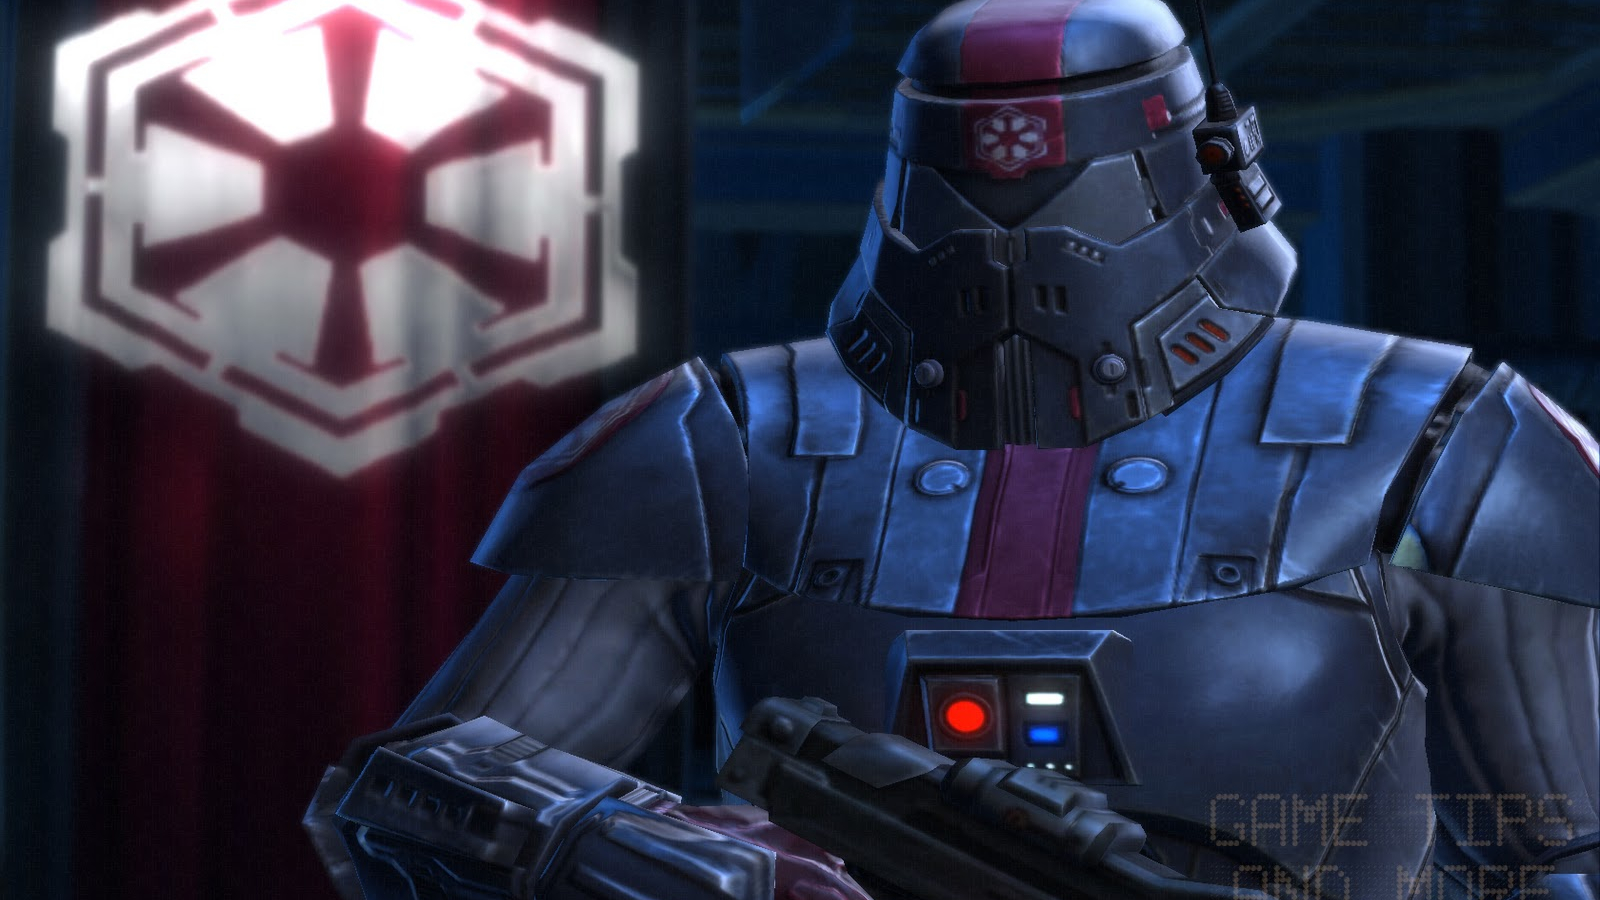 Free Download Star Wars Imperial Guard Wallpaper Star Wars The Old Republic 1600x1000 For Your Desktop Mobile Tablet Explore 47 Star Wars Imperial Guard Wallpaper Star Wars Wallpaper 1080p